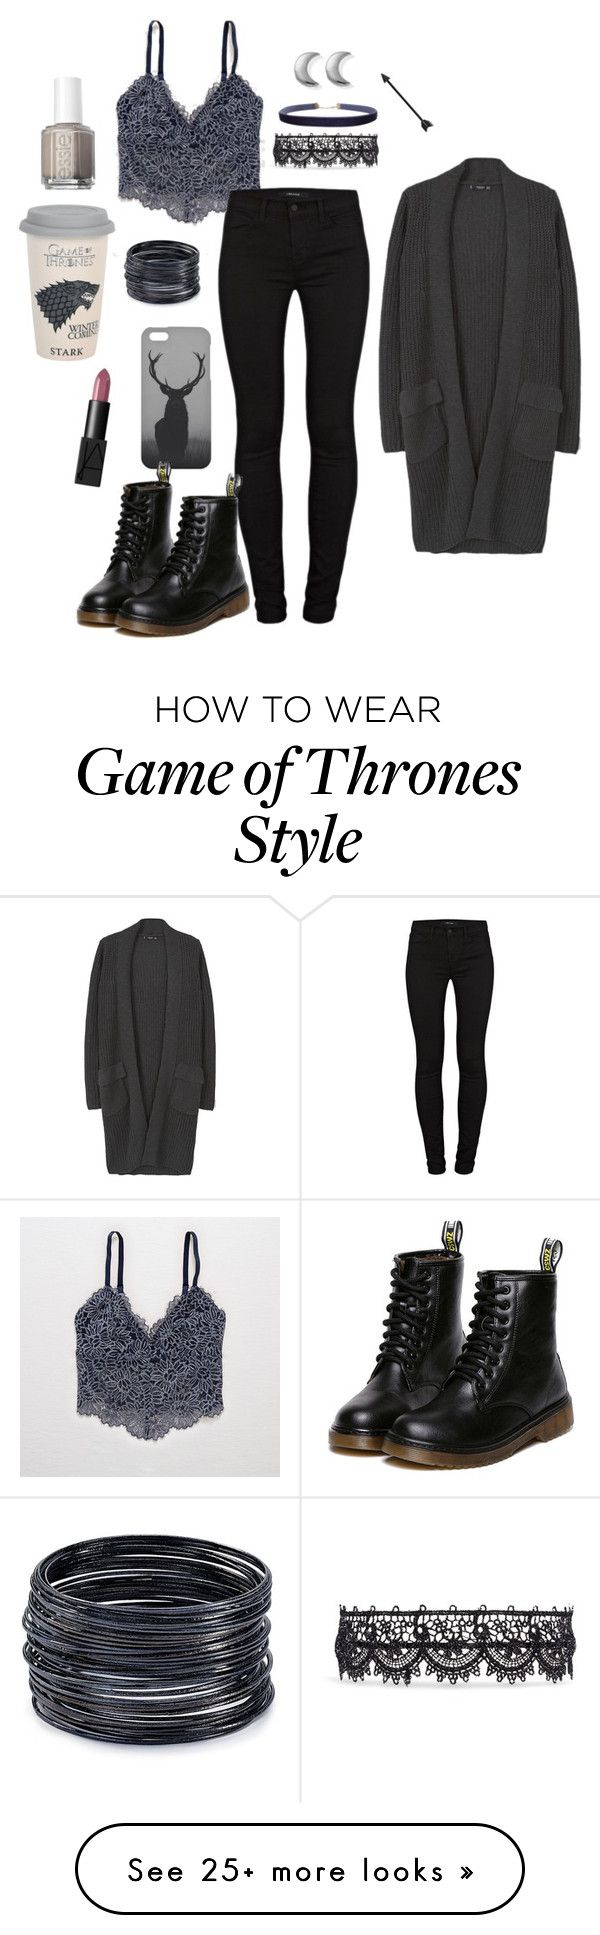 """Untitled #1098"" by equestrianartist on Polyvore featuring Aerie, MANGO, J Brand, Fallon, Mr. Gugu & Miss Go, Humble Chic, ChloBo, ABS by Allen Schwartz, NARS Cosmetics and Essie"